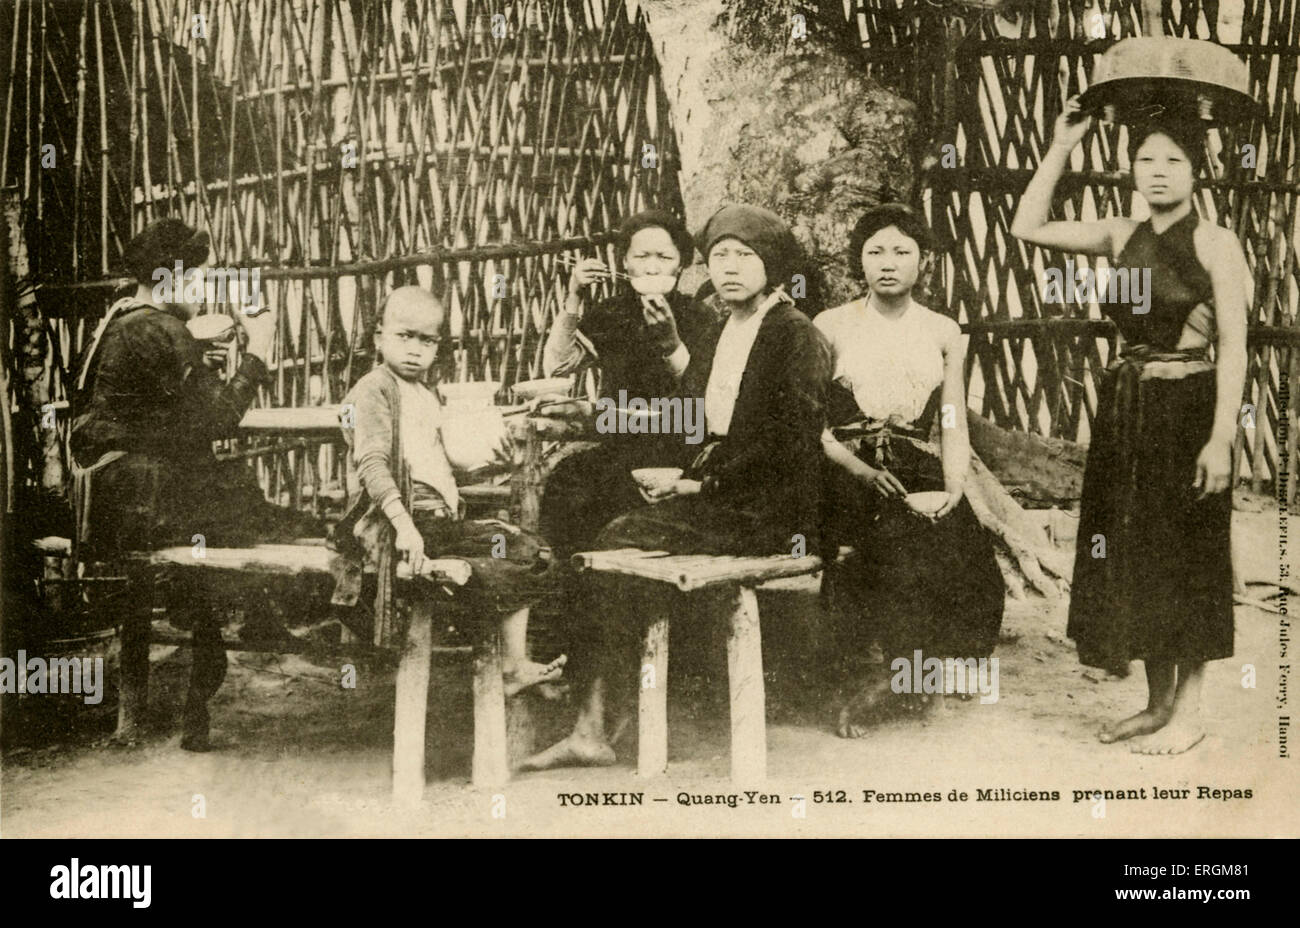 Wives of the Vietnamese militia Tonkin, north Vietnam. Postcard used in 1904. - Stock Image